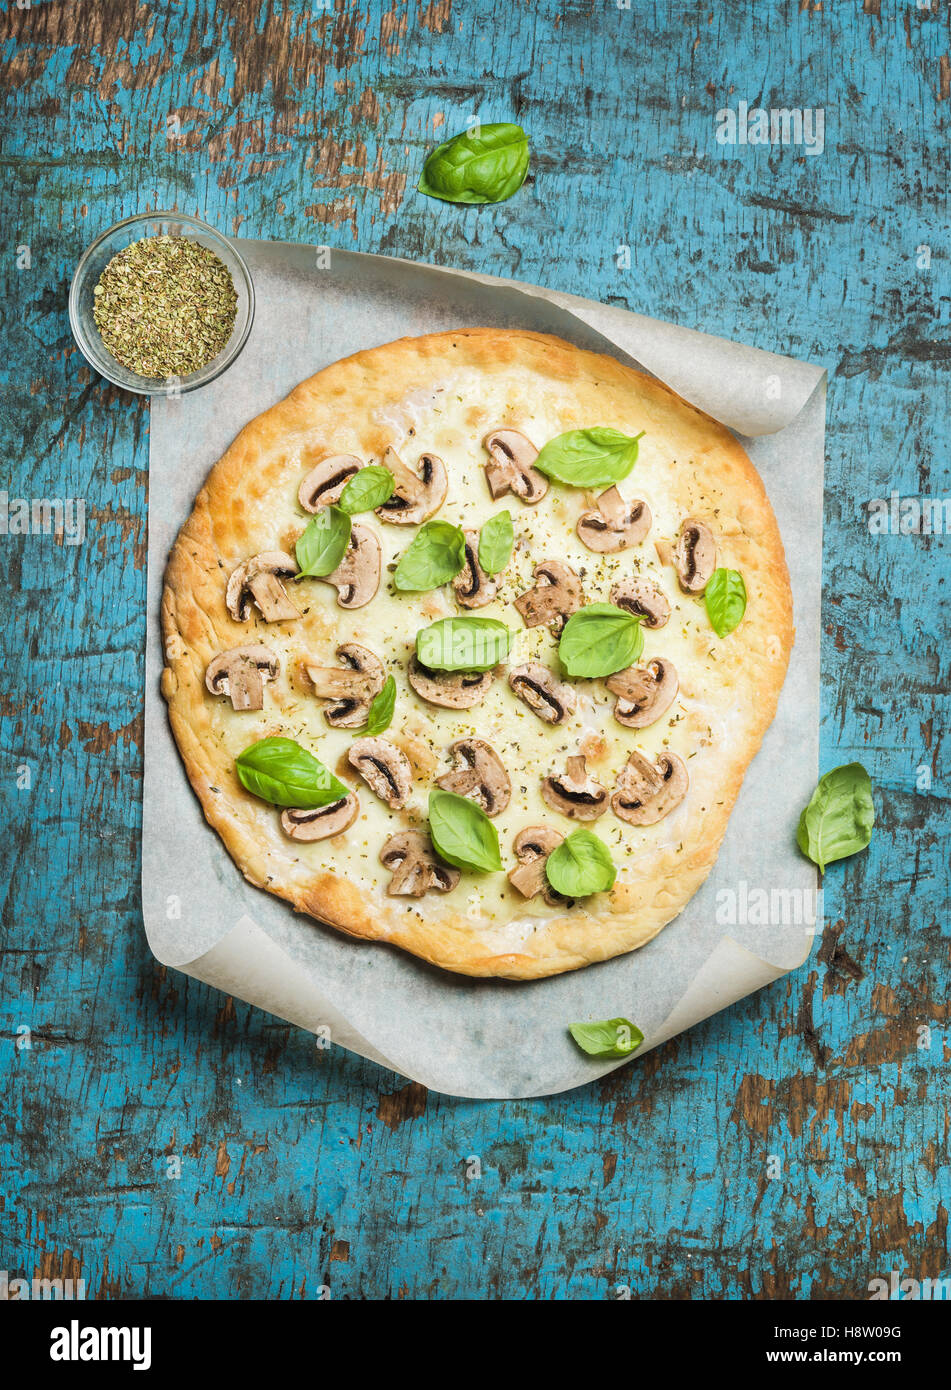 Homemade mushroom pizza with basil leaves over blue wooden background - Stock Image